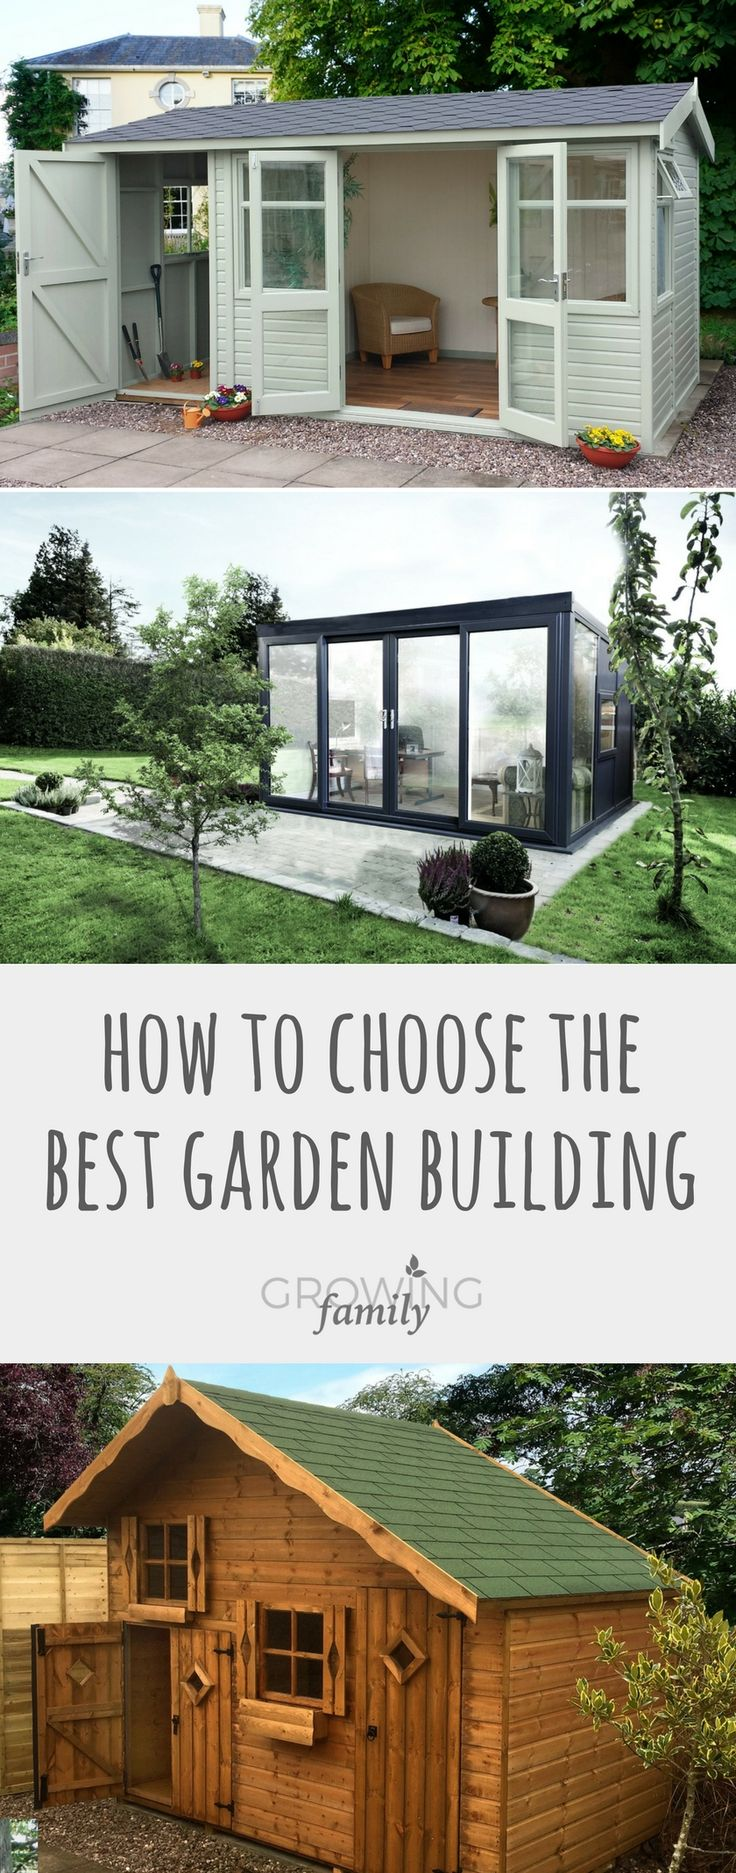 Looking to replace or introduce a garden building to your outdoor space? Check out these great tips on what to consider before you buy.